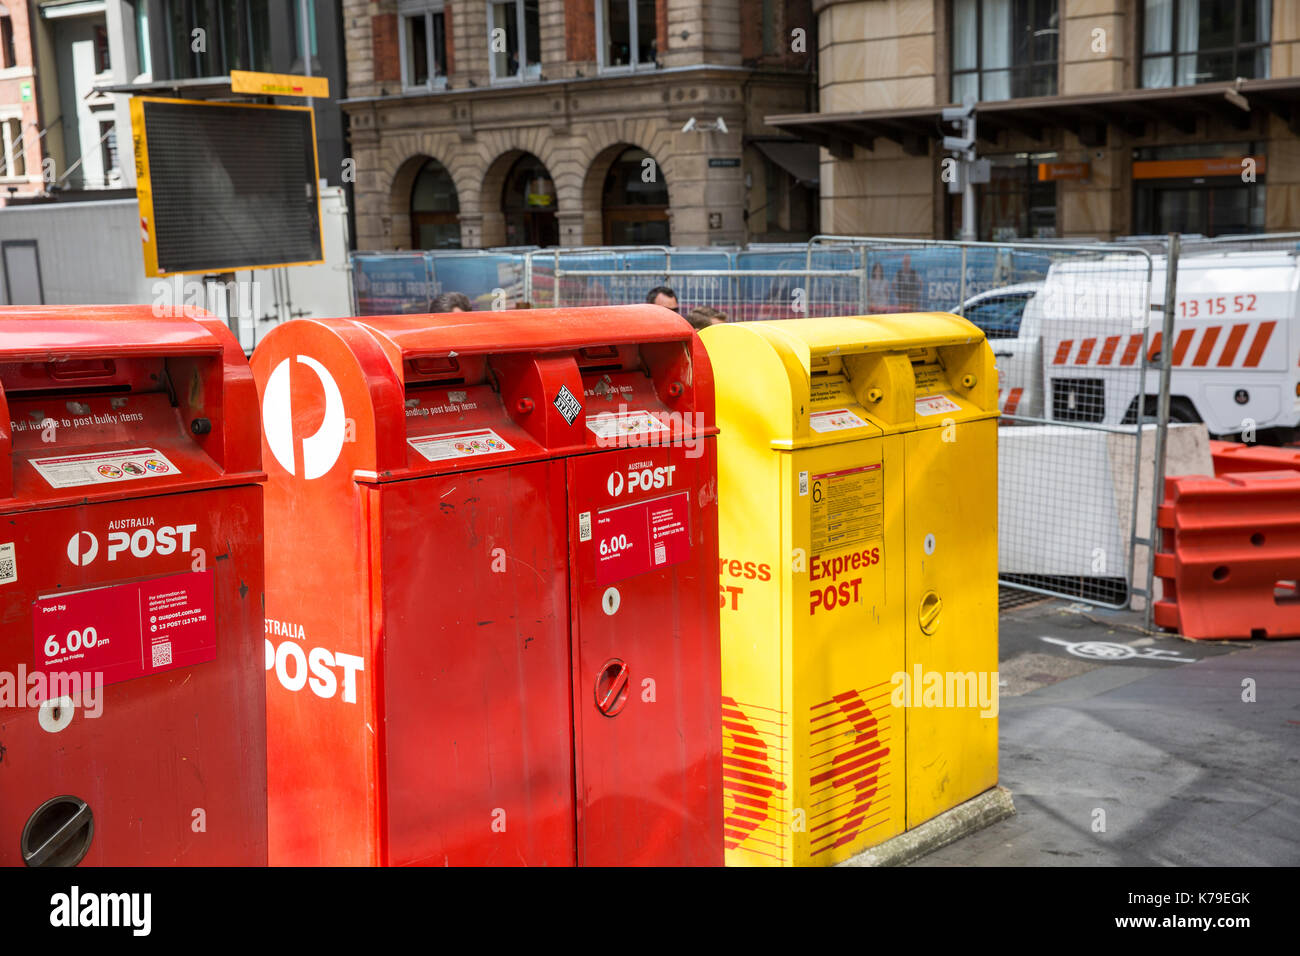 Australia Post mail letter boxes in Sydney city centre, the